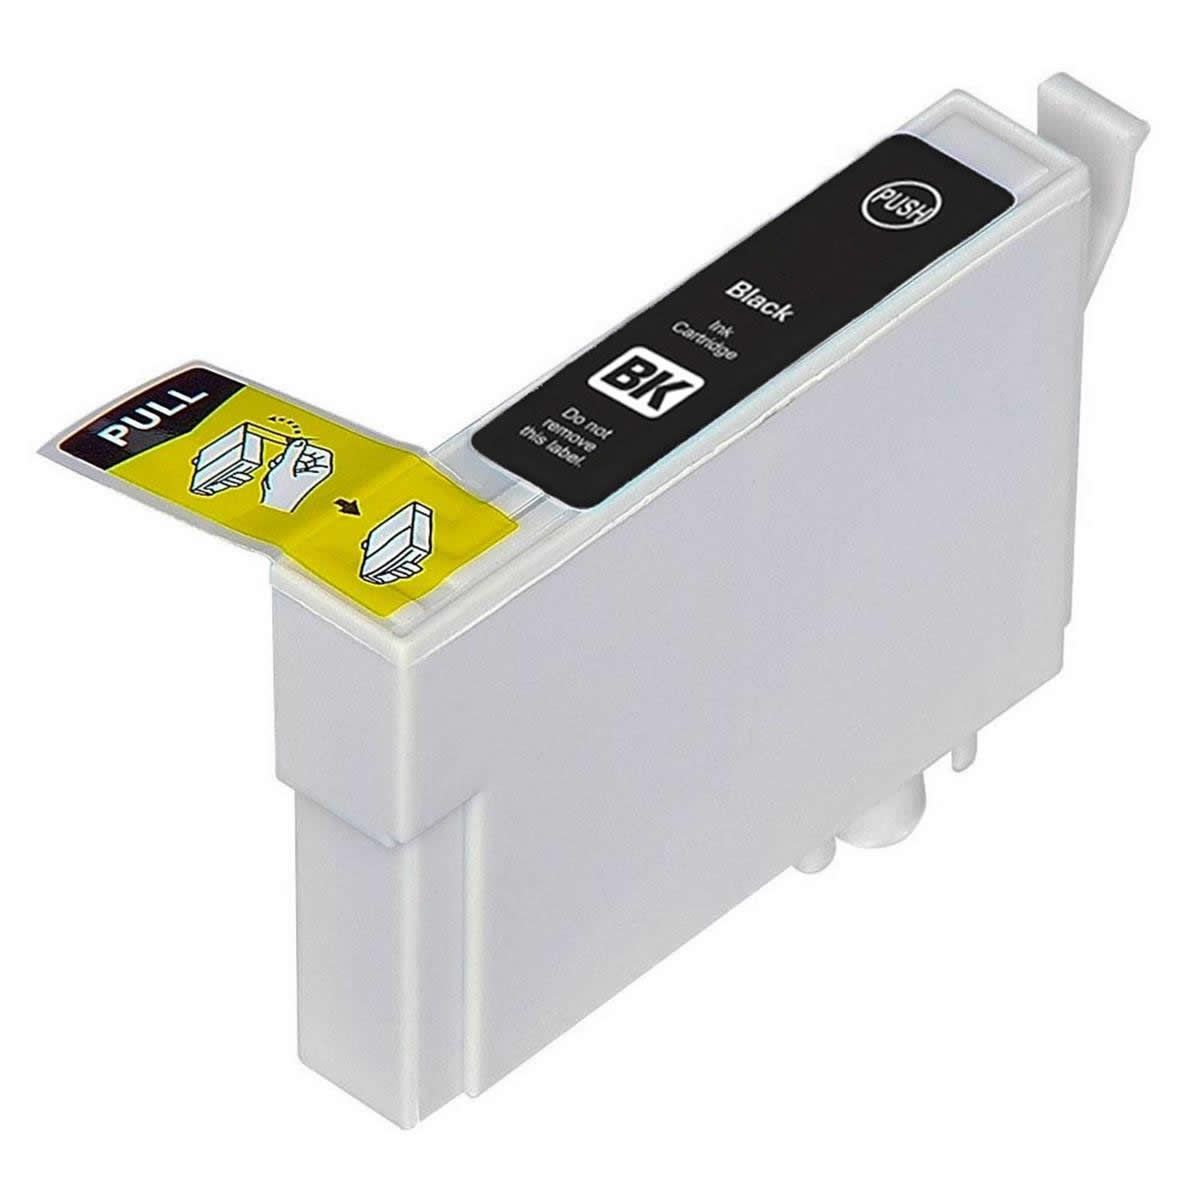 Cartucho TO731N TO73120 731 Preto Compativel para Epson C79 CX3900 CX4900 CX5900